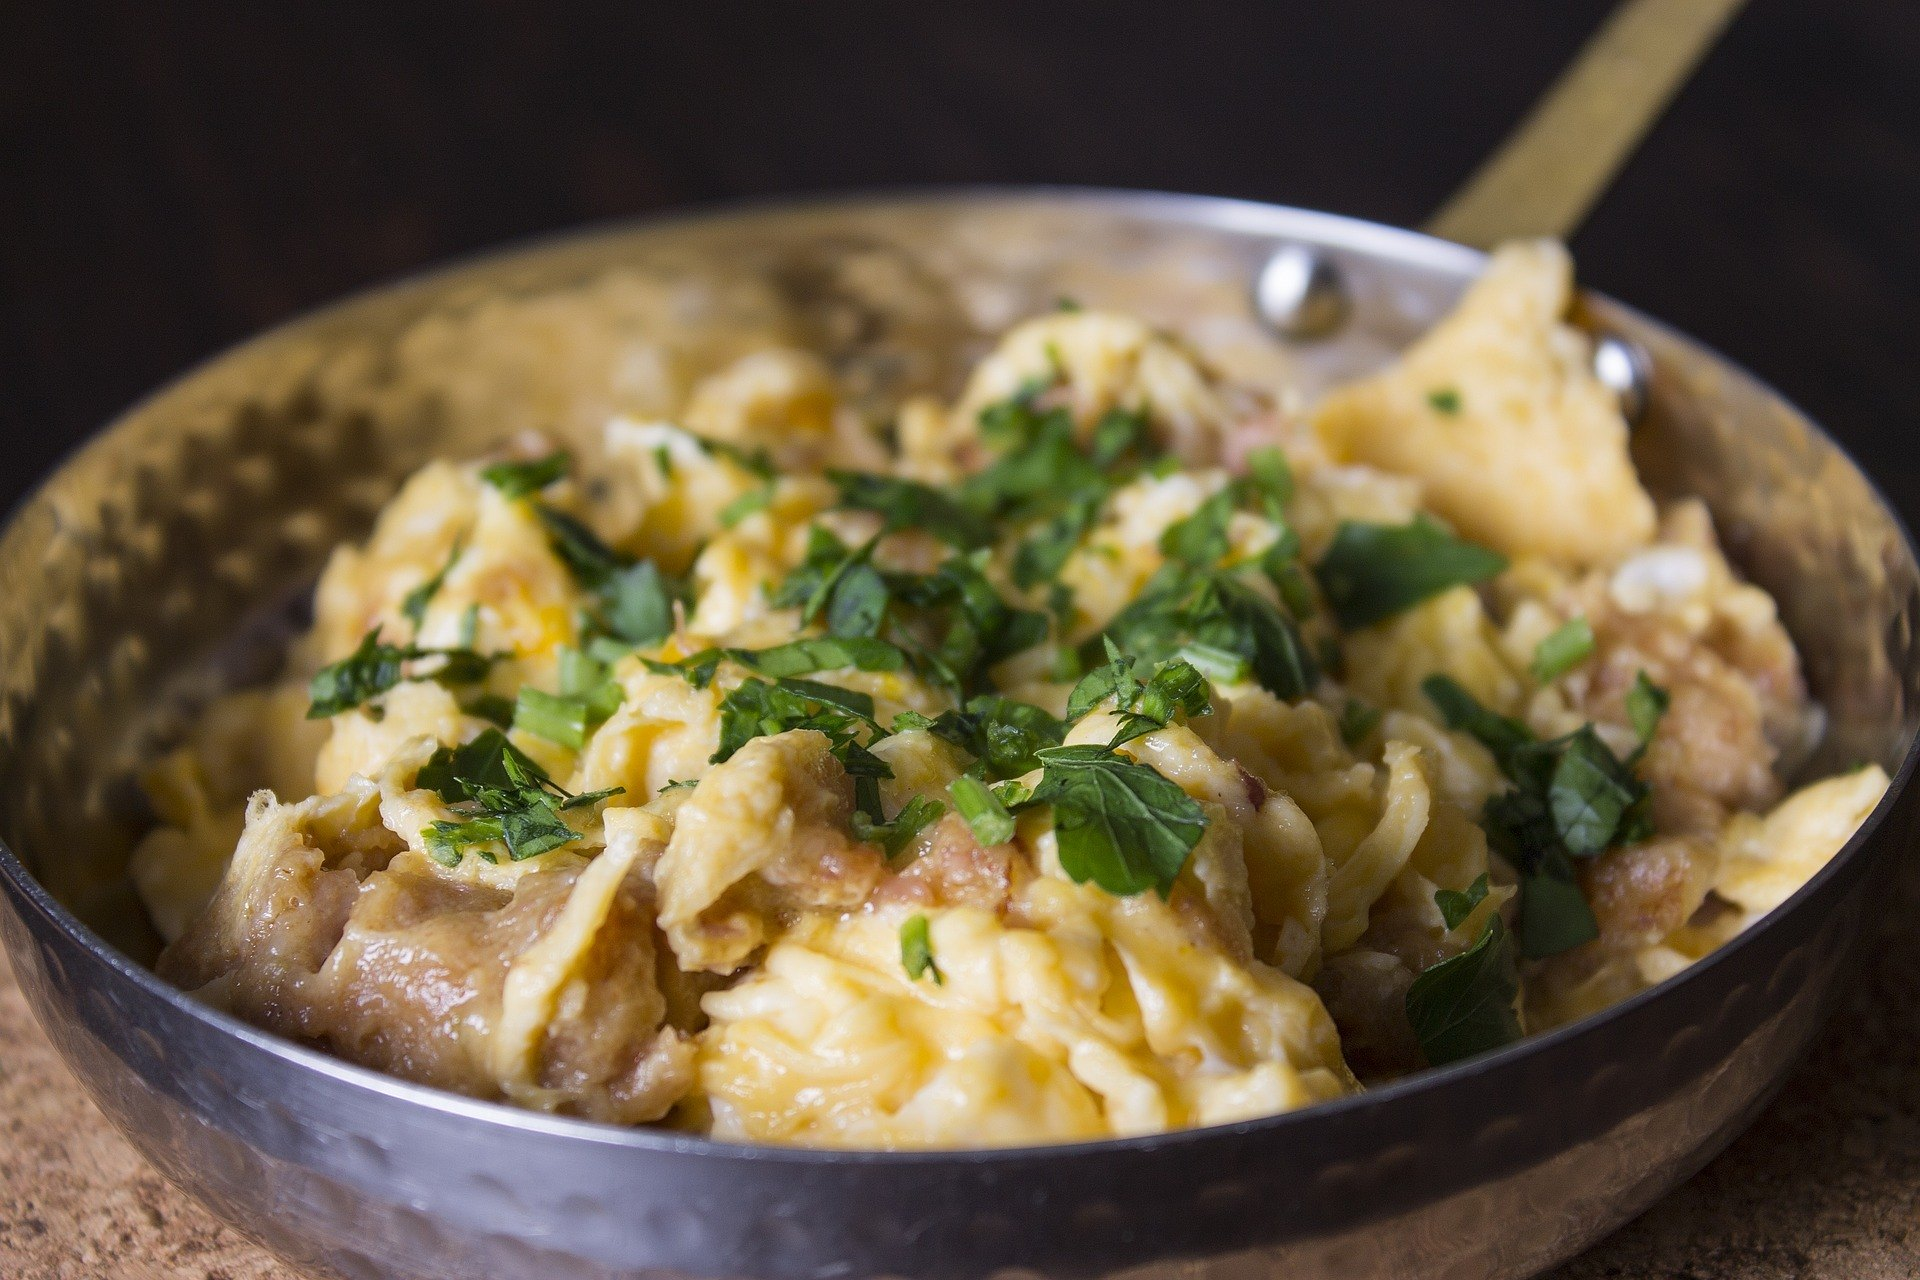 Portuguese Sausages and Scrambled Eggs